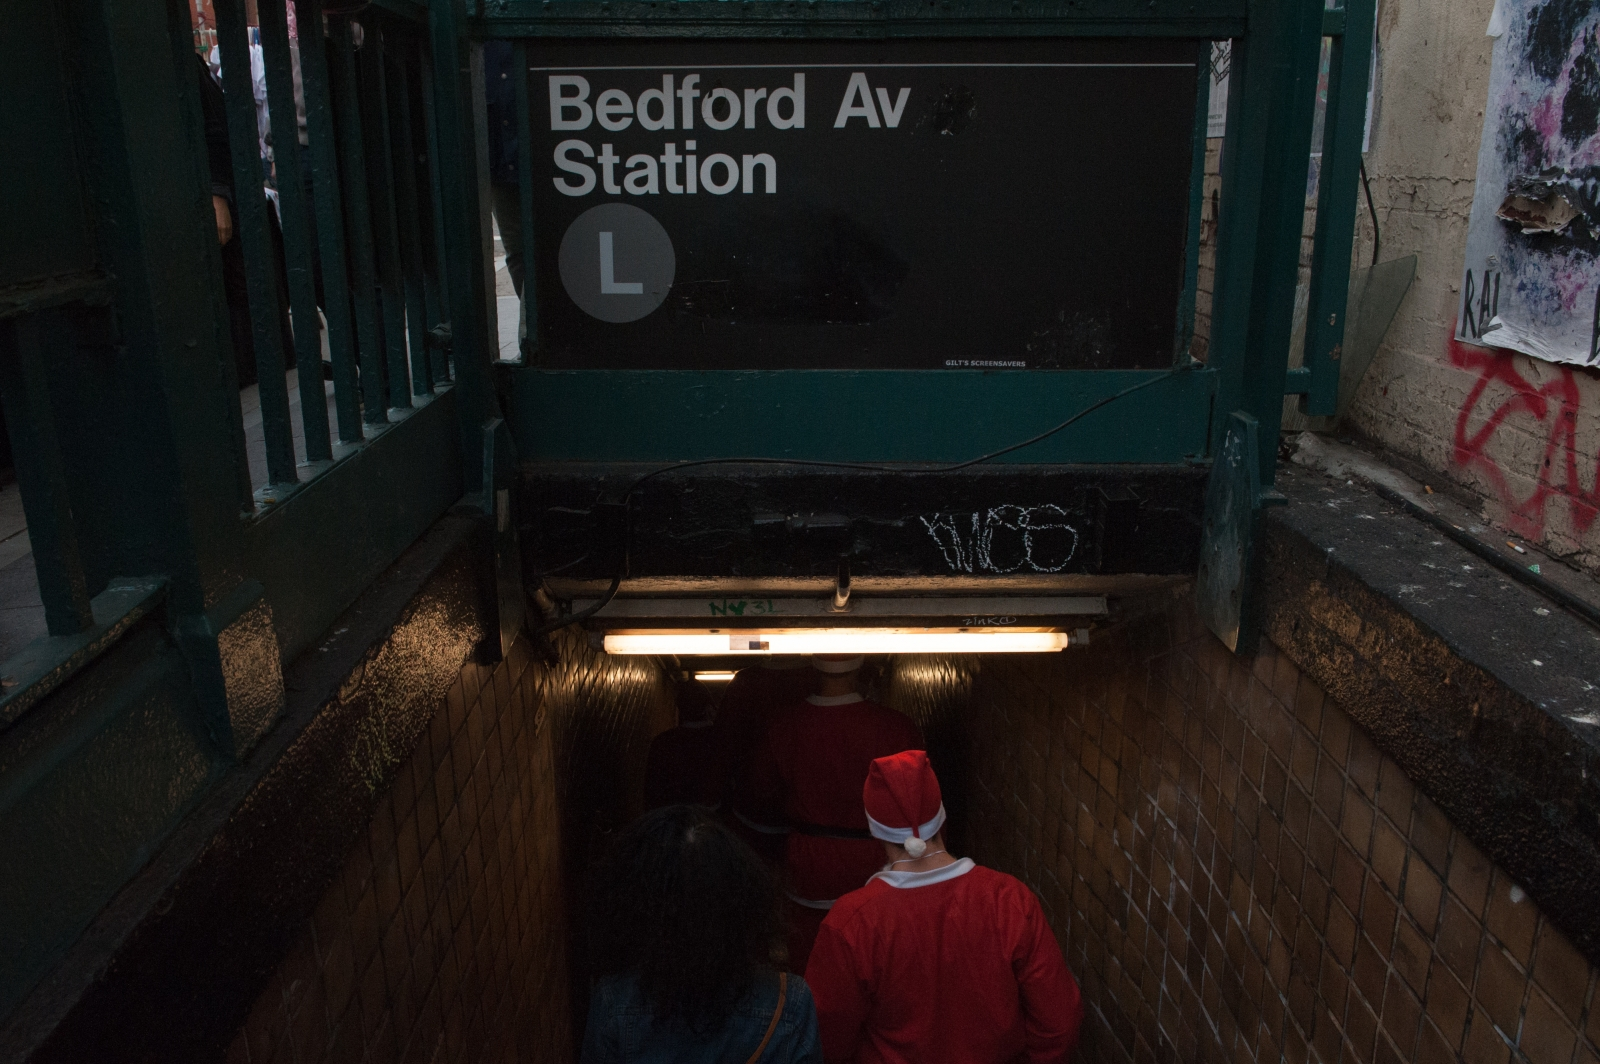 Bedford Avenue station